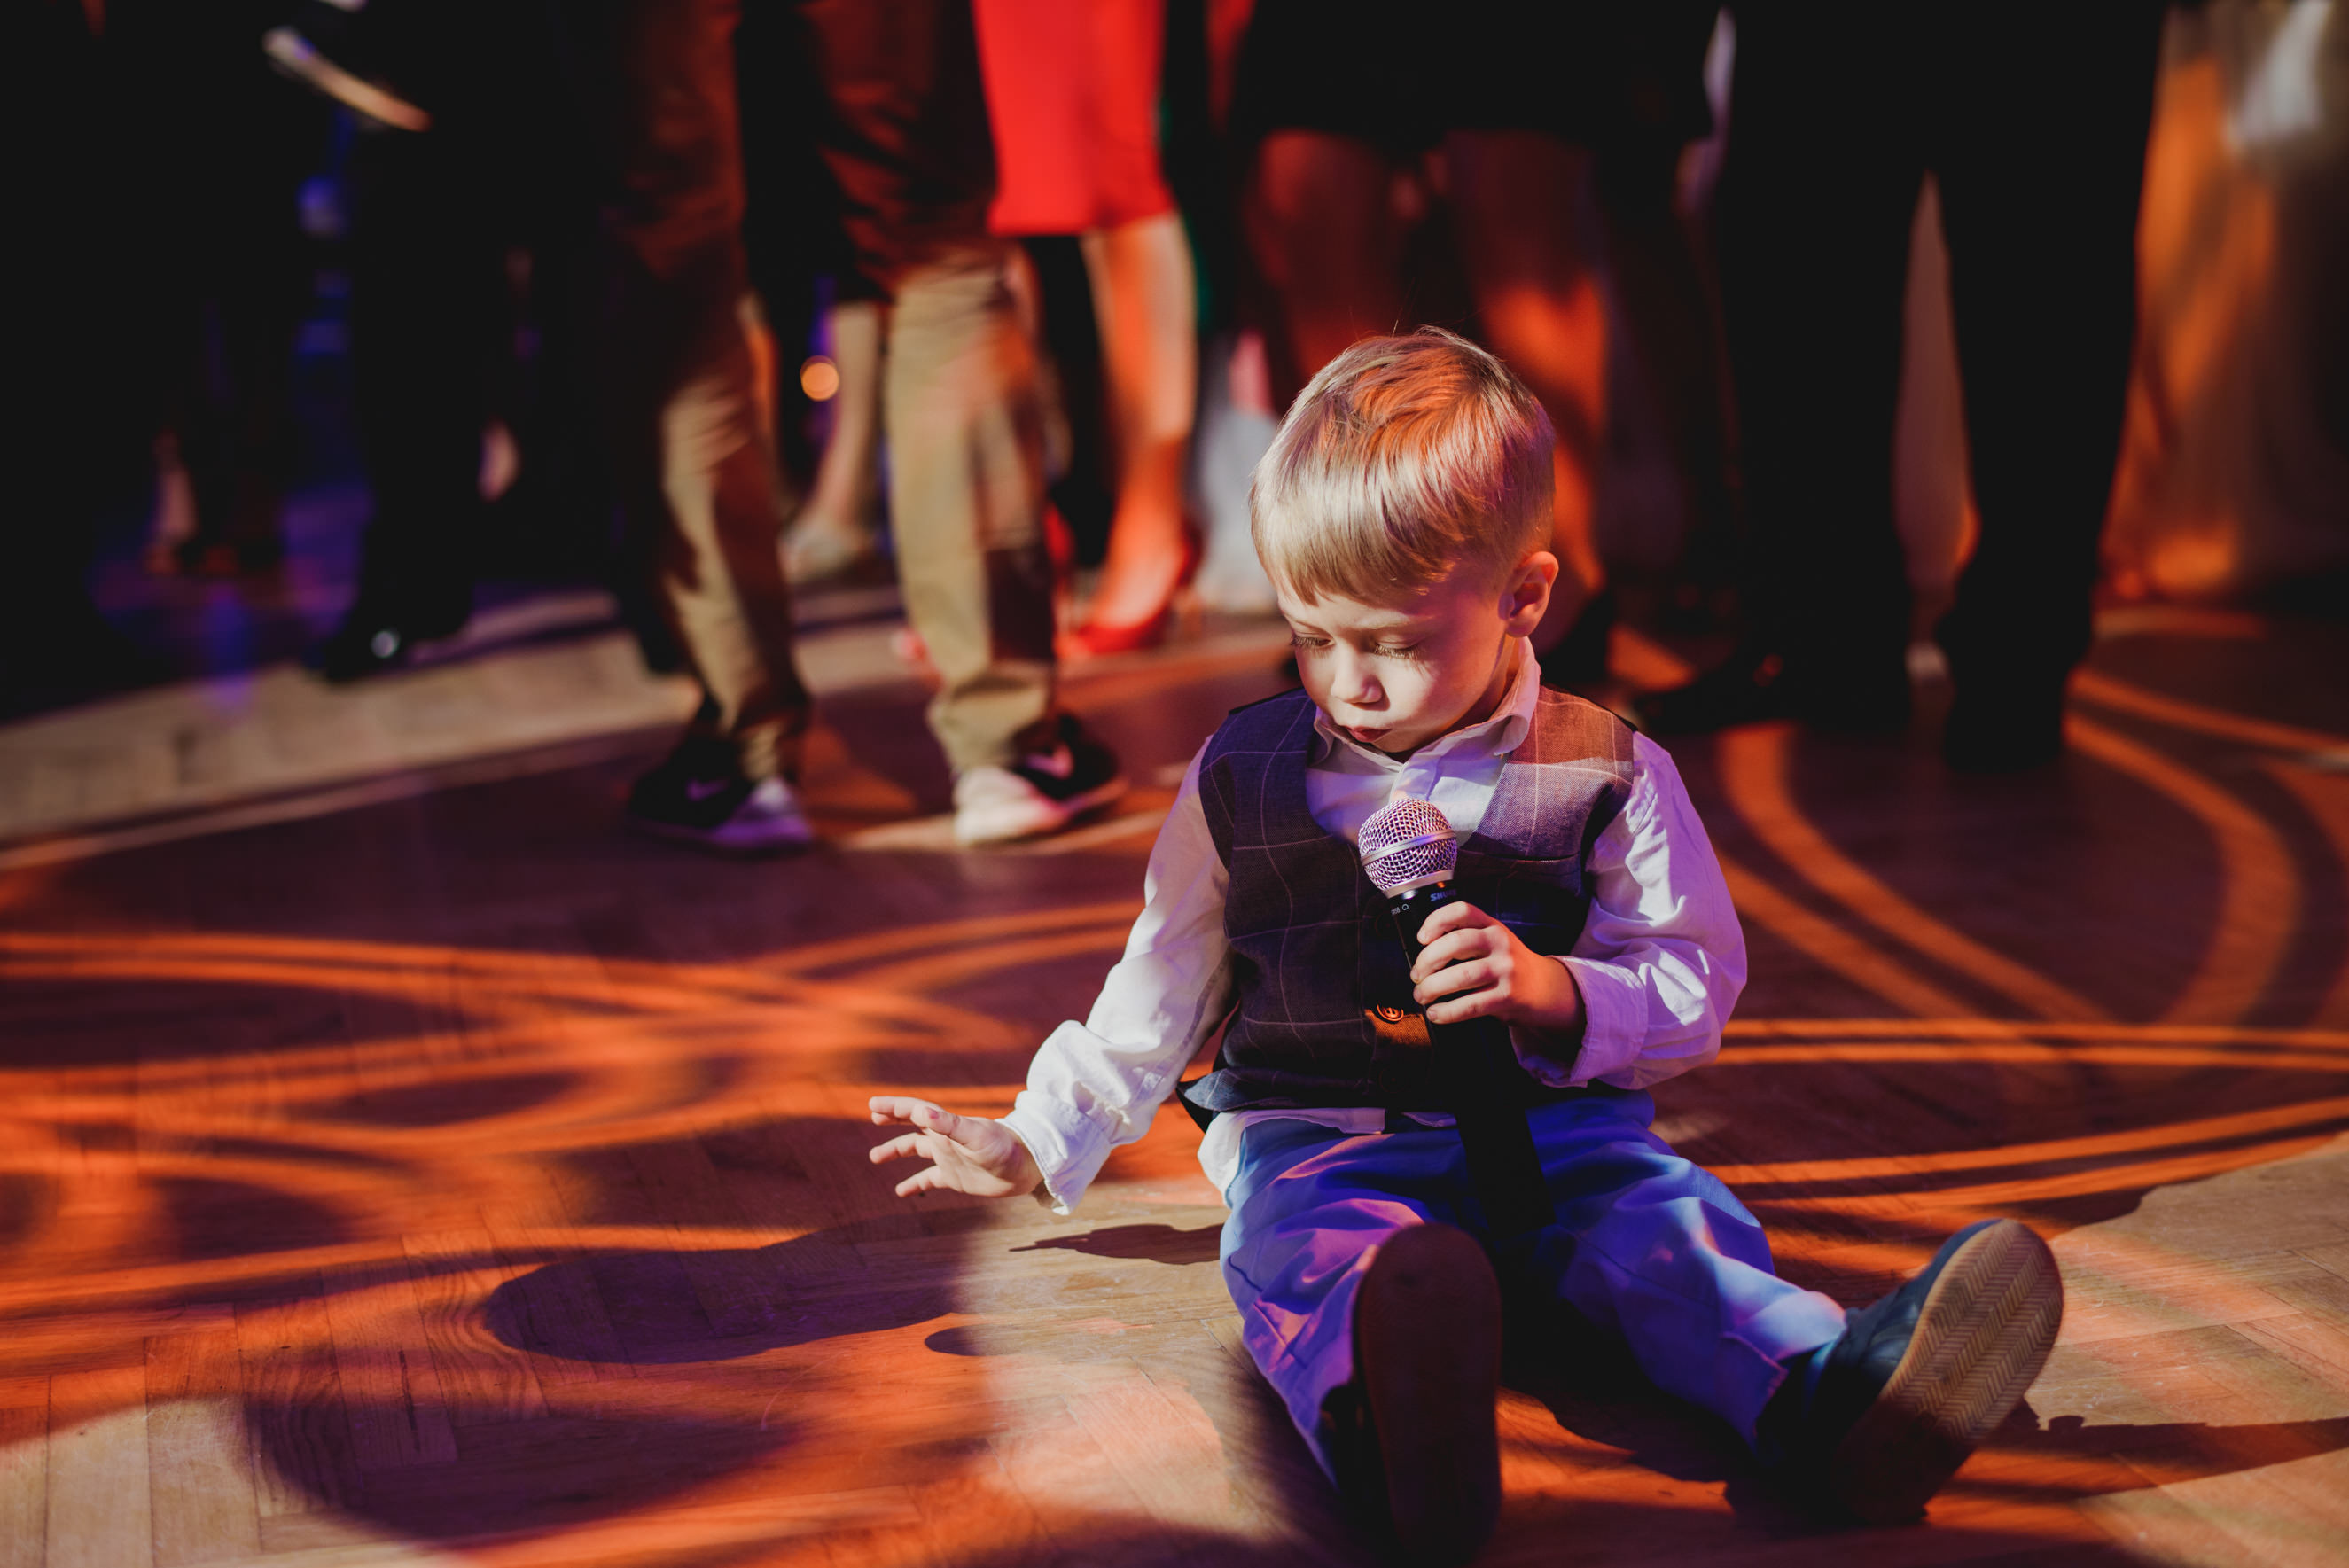 kid sitting on the floor playing with Promologistika lighting system while holding bands microphone